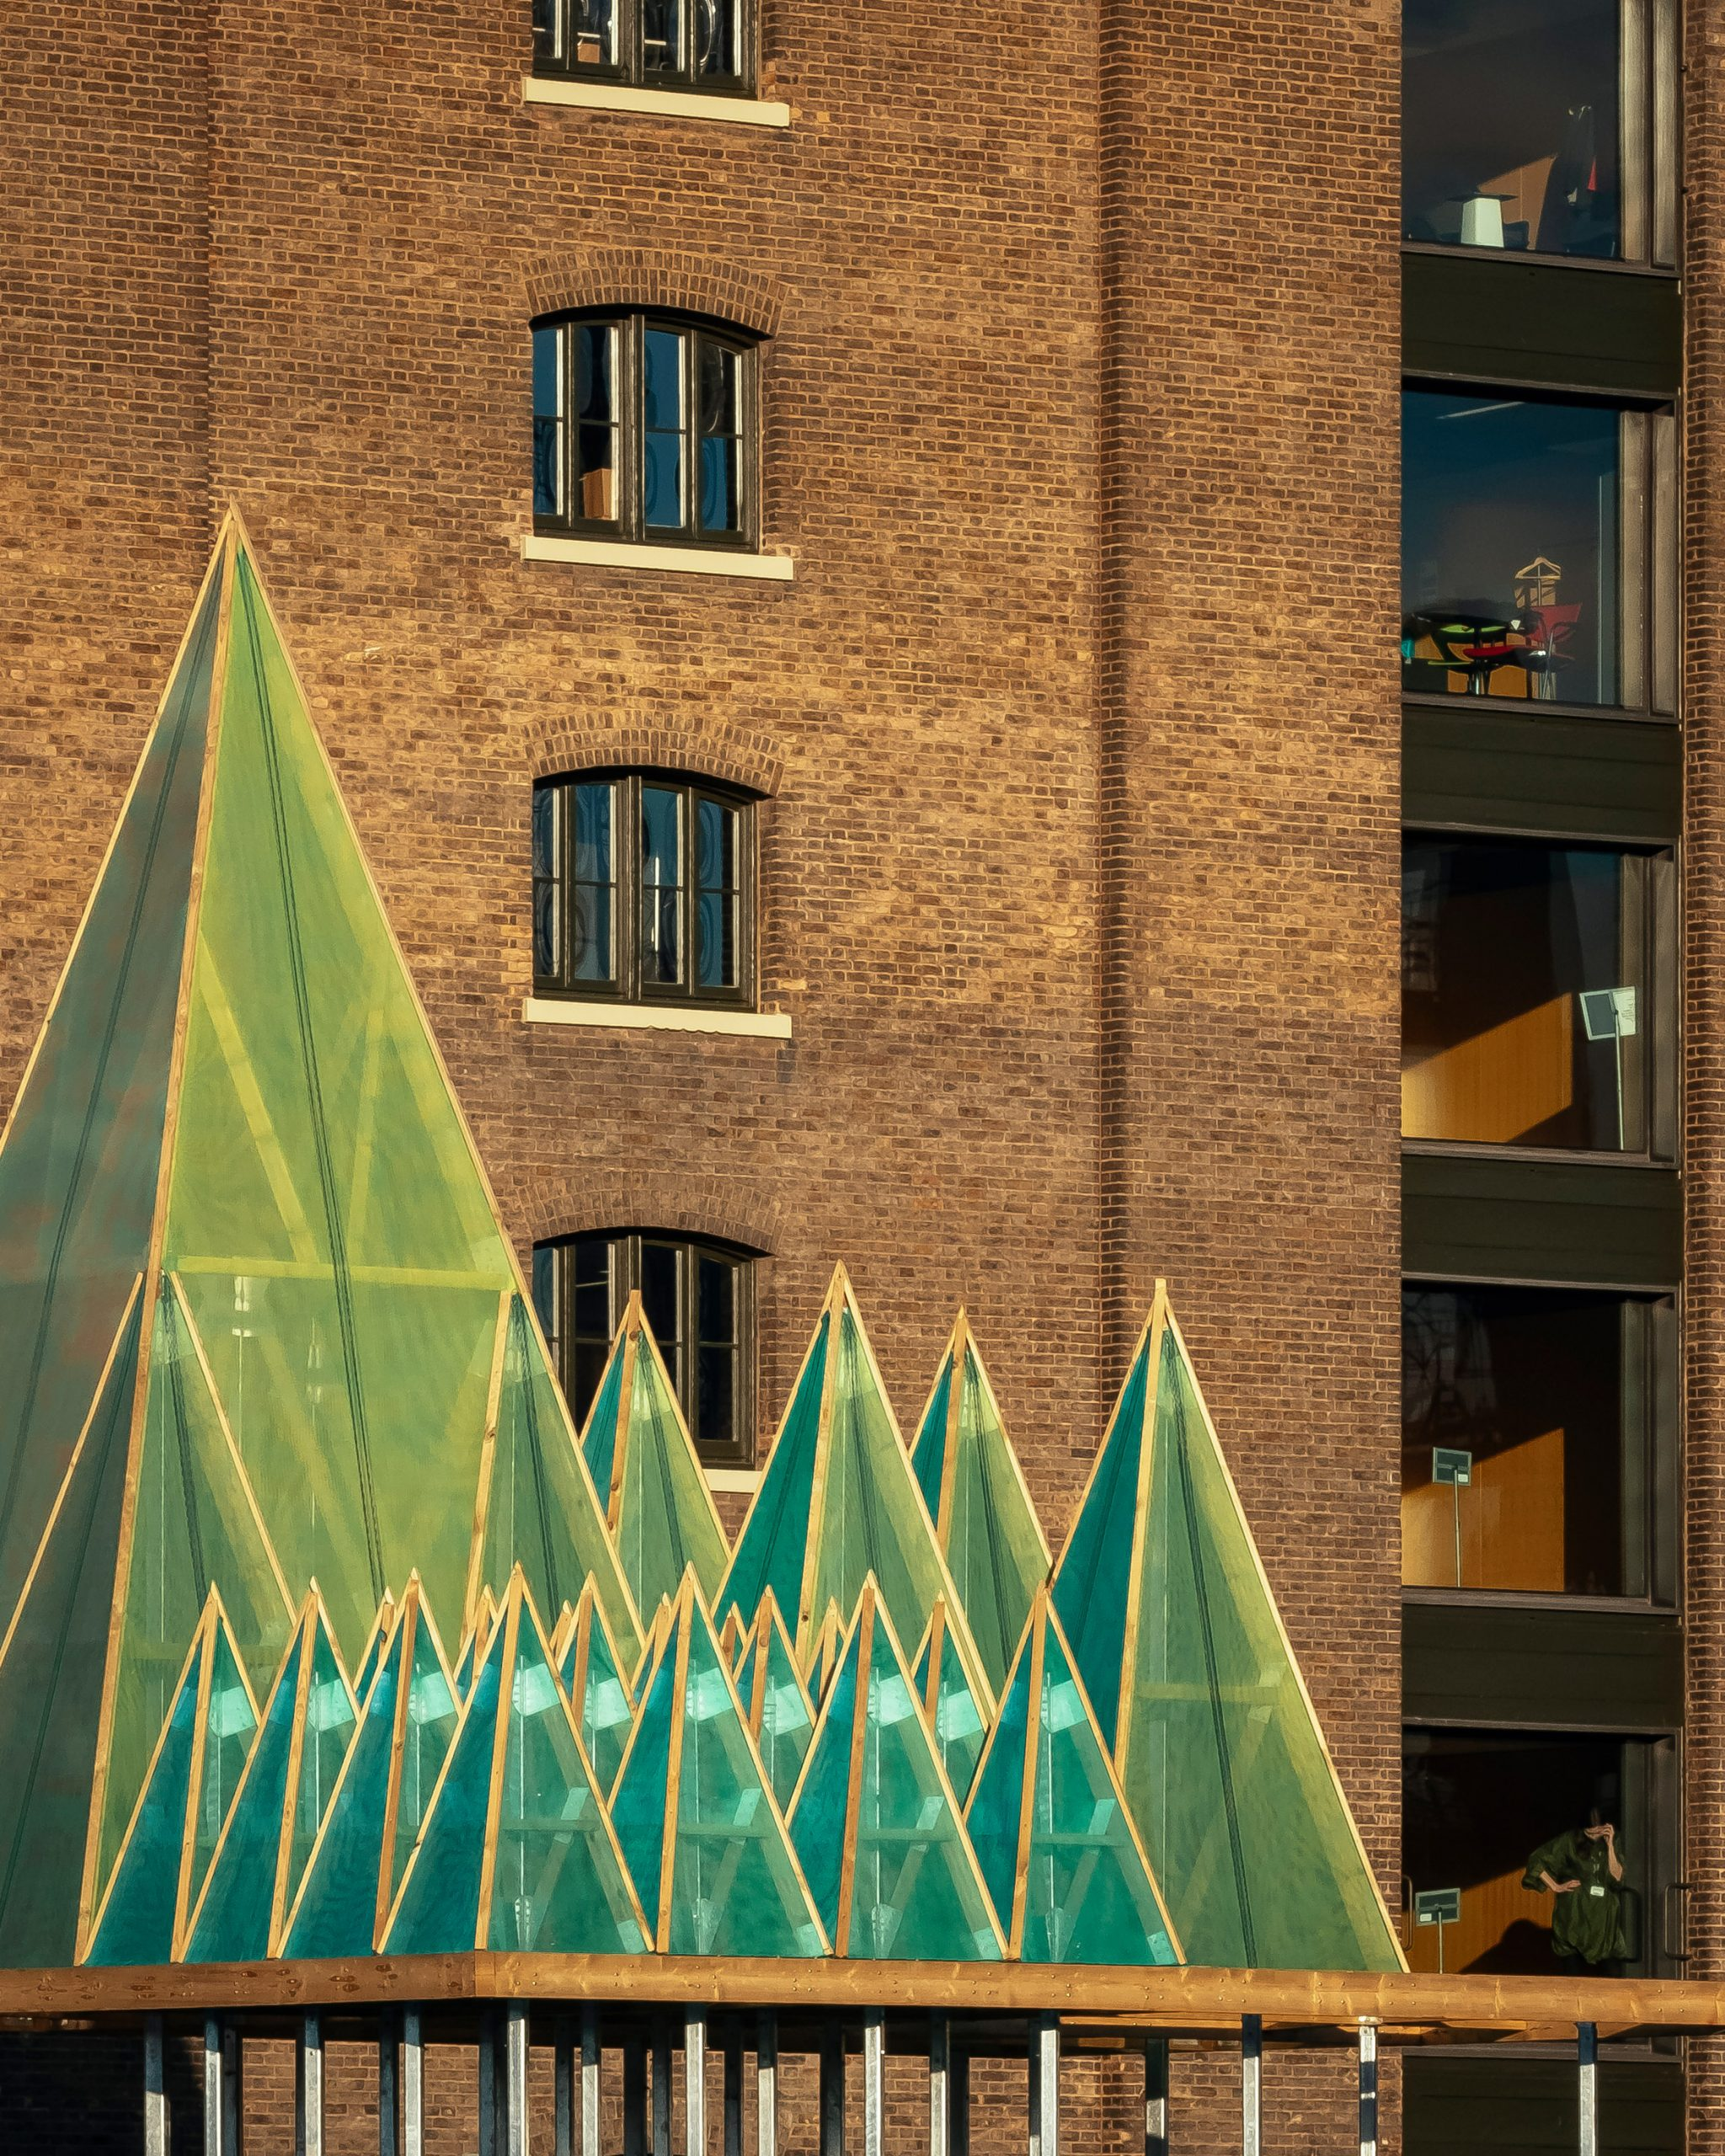 Close up of the Electric Nemeton Christmas installation by Sam Jacob Studio in King's Cross, London